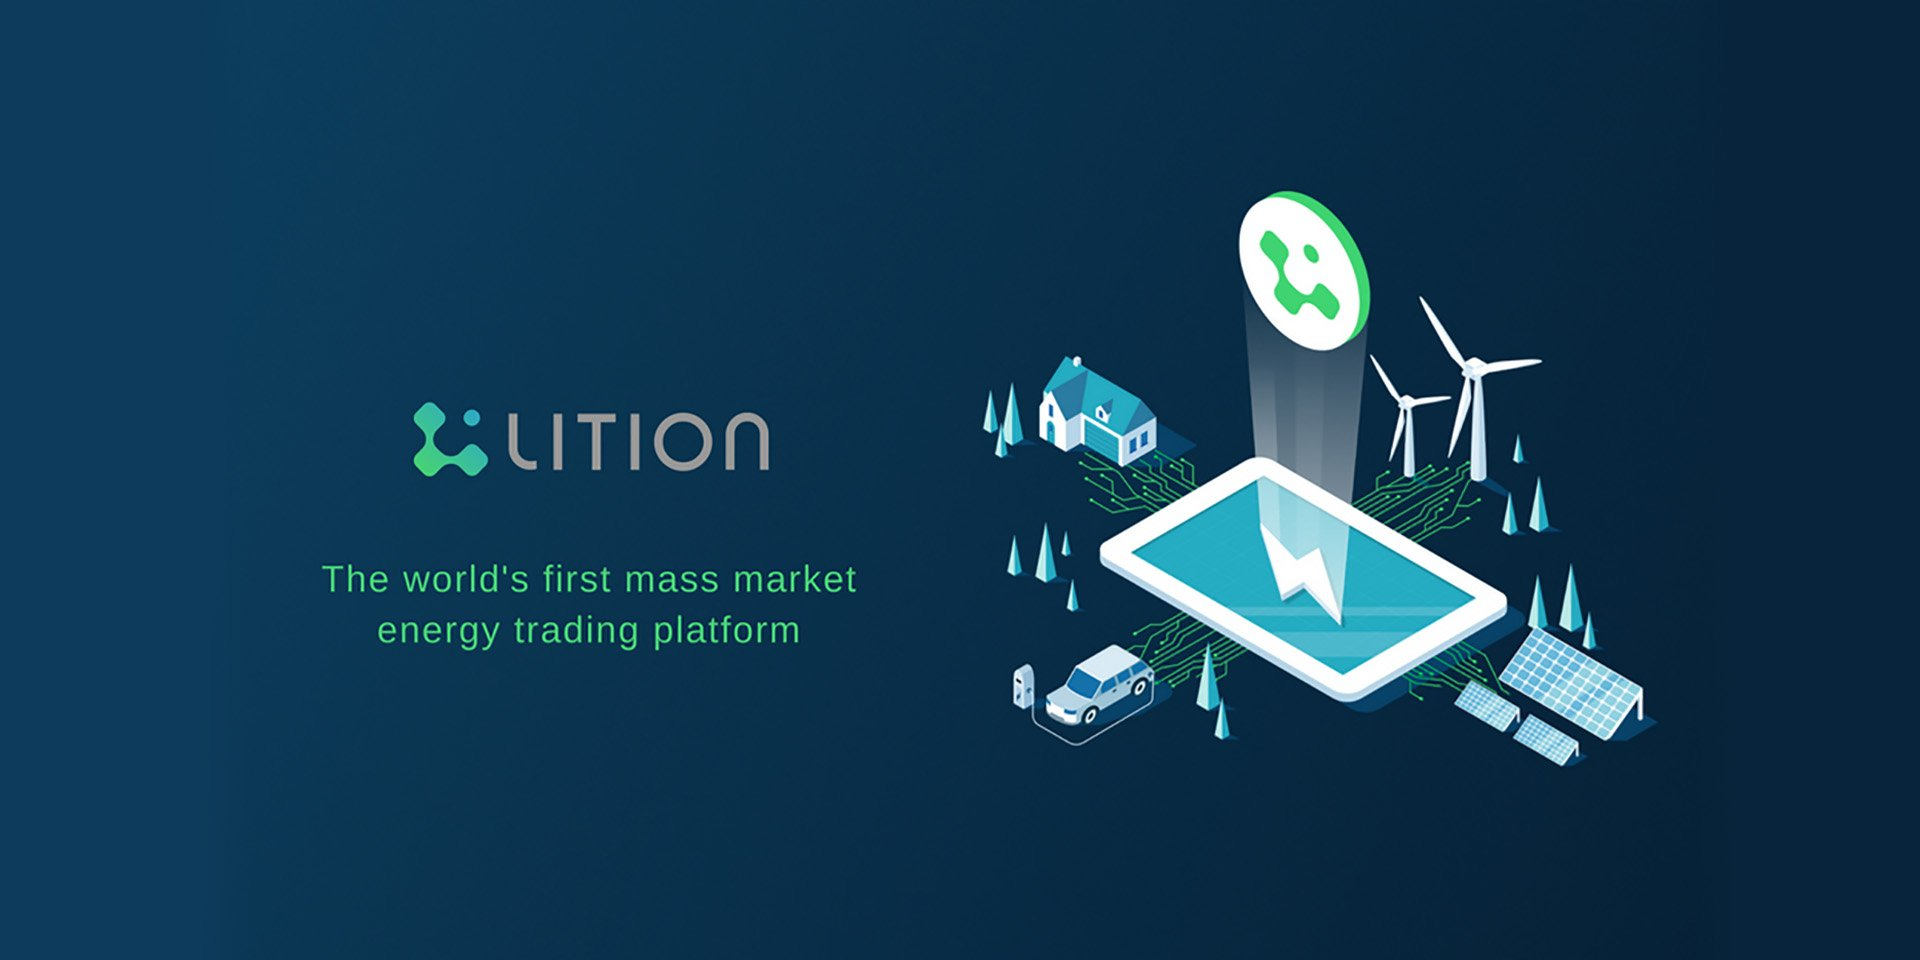 Lition is The World's First Operational Peer-to-Peer Energy Trading Platform